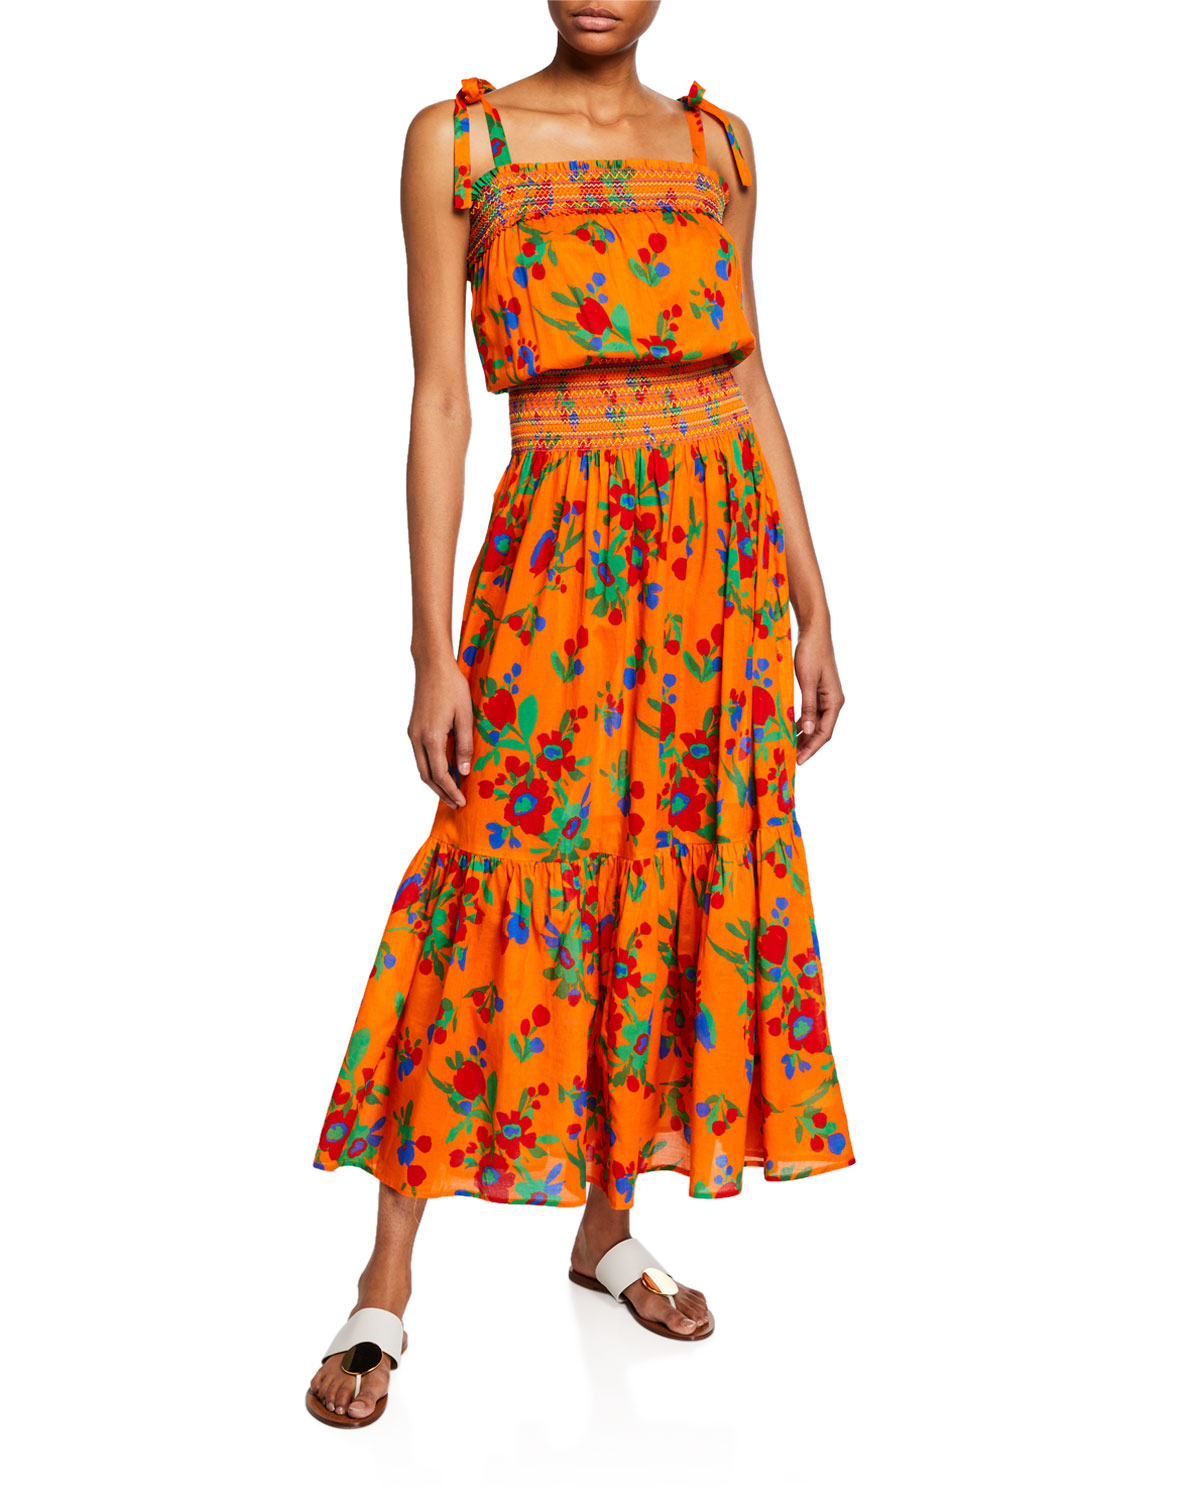 2b5b5d09d5 Tory Burch Floral-Print Smocked Cotton Maxi Dress